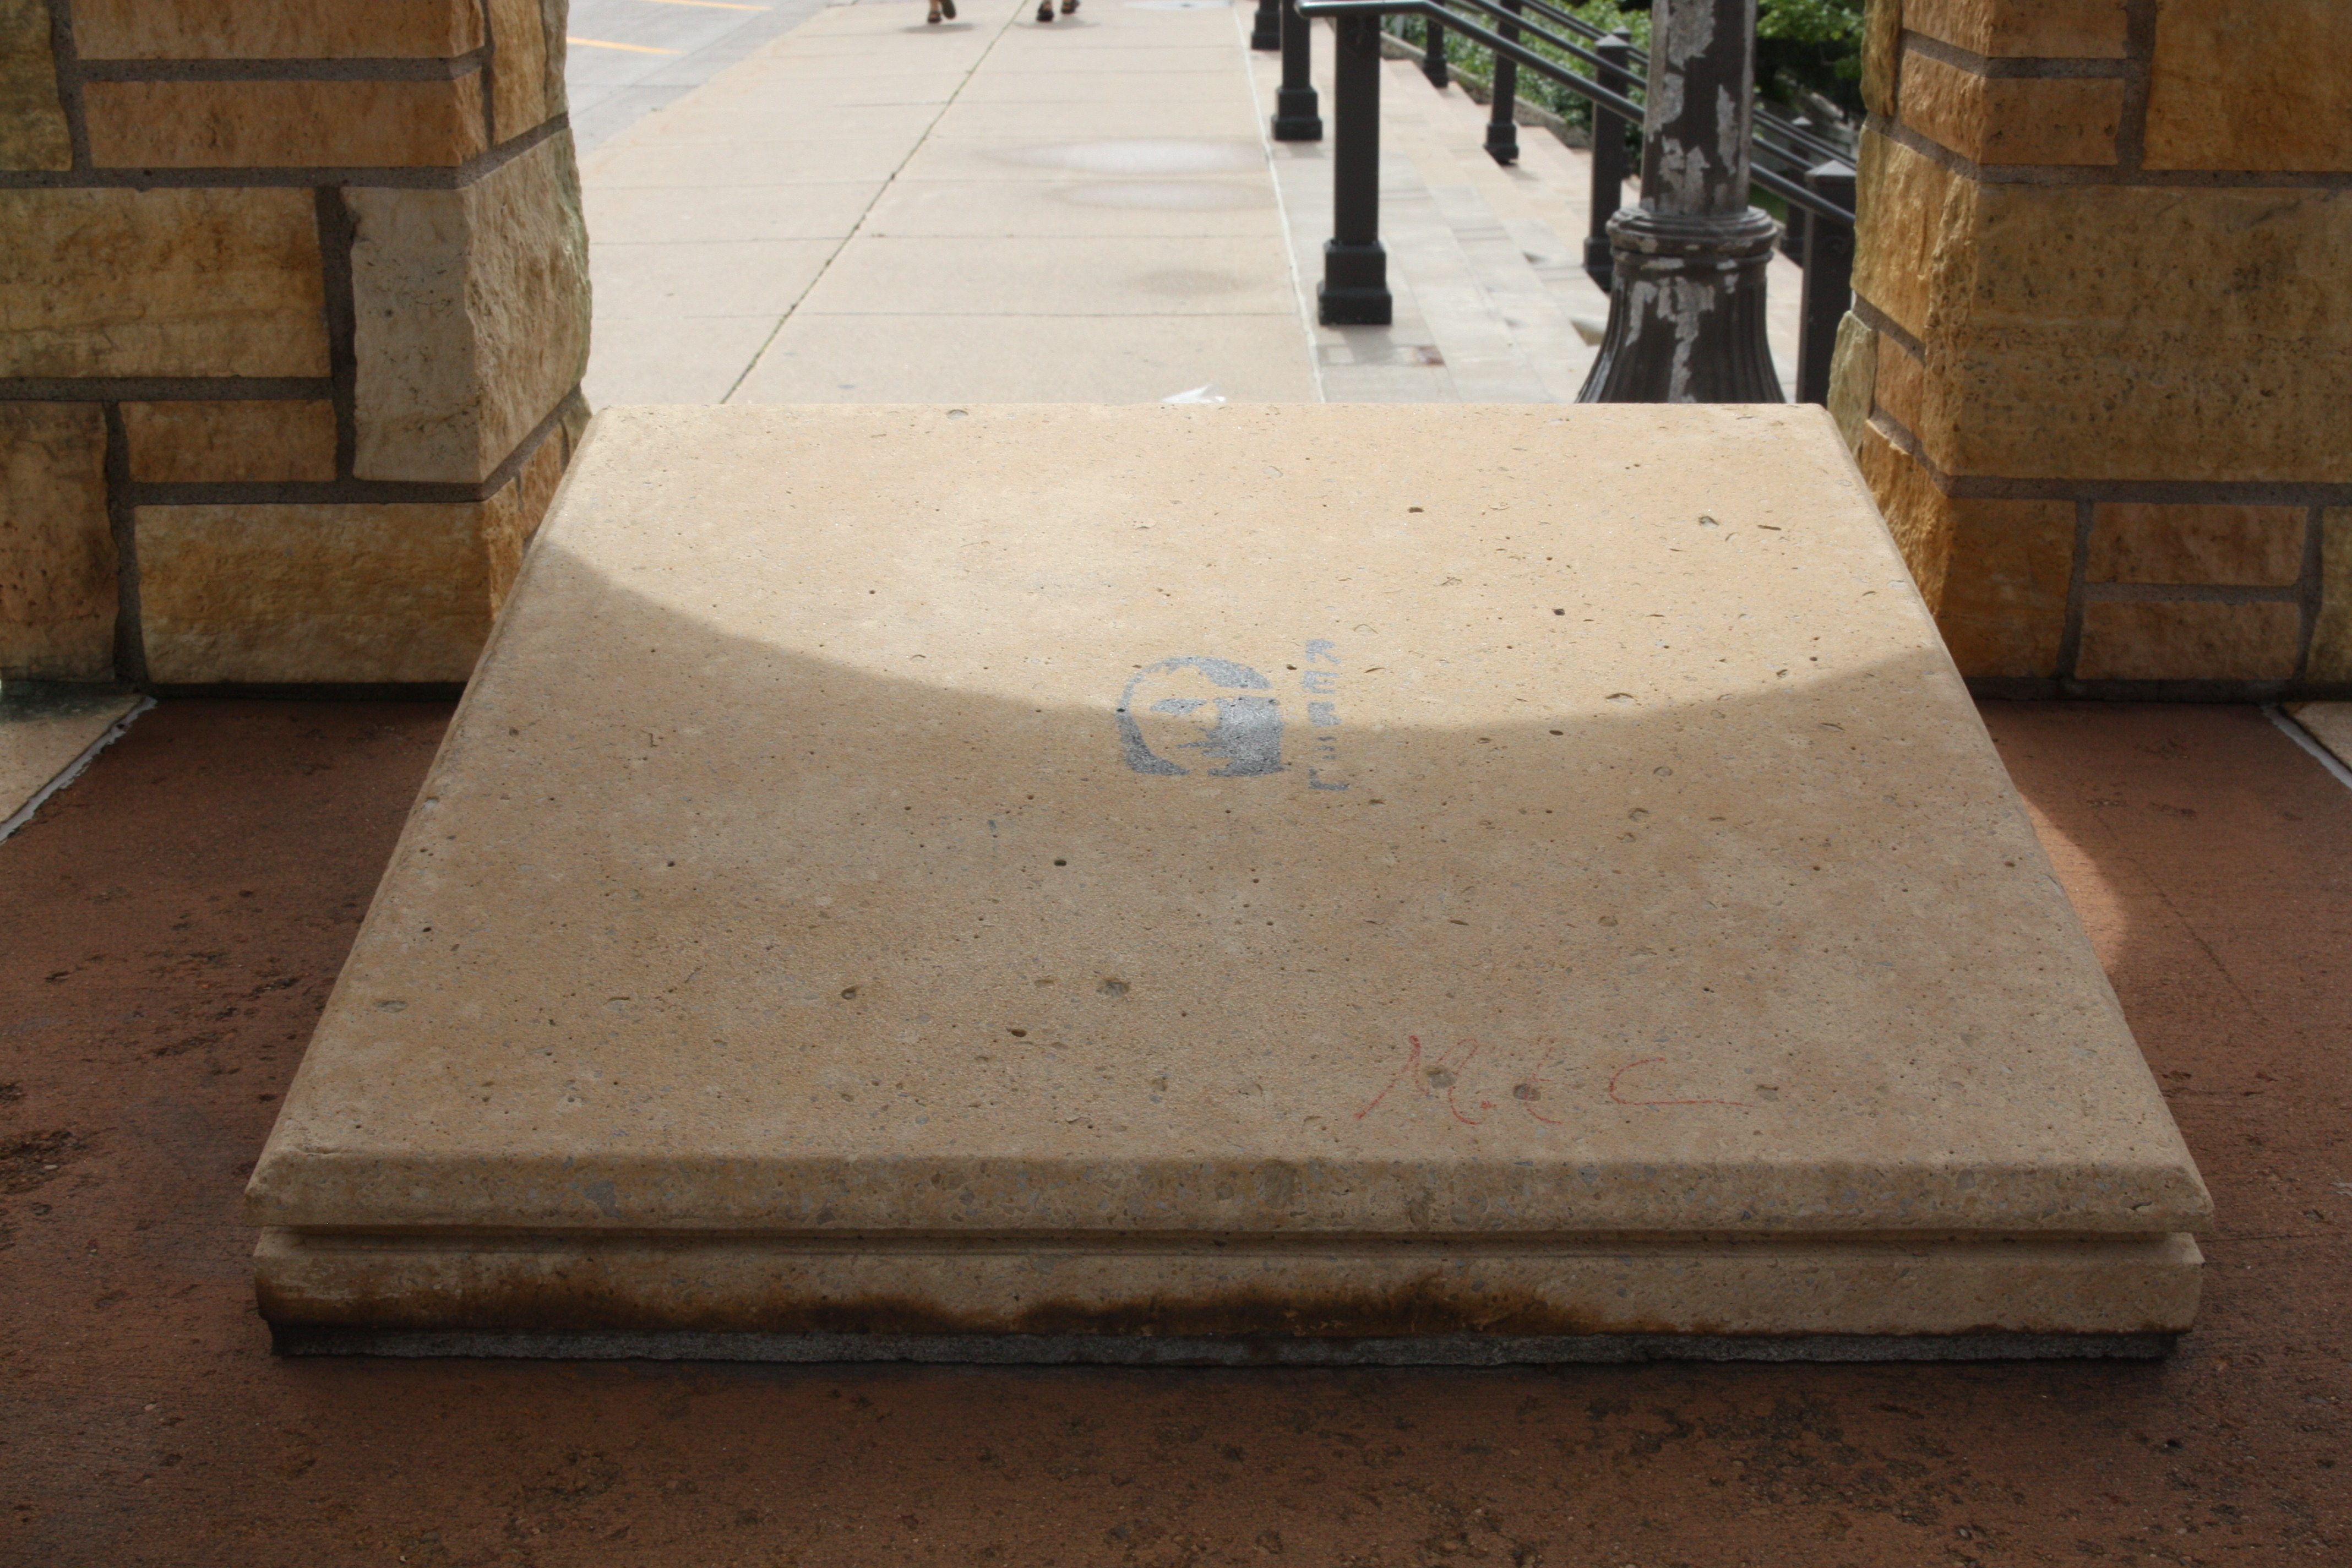 The slab is all that is inside the tower on Kellogg. I couldn't find a plaque or marker anywhere.